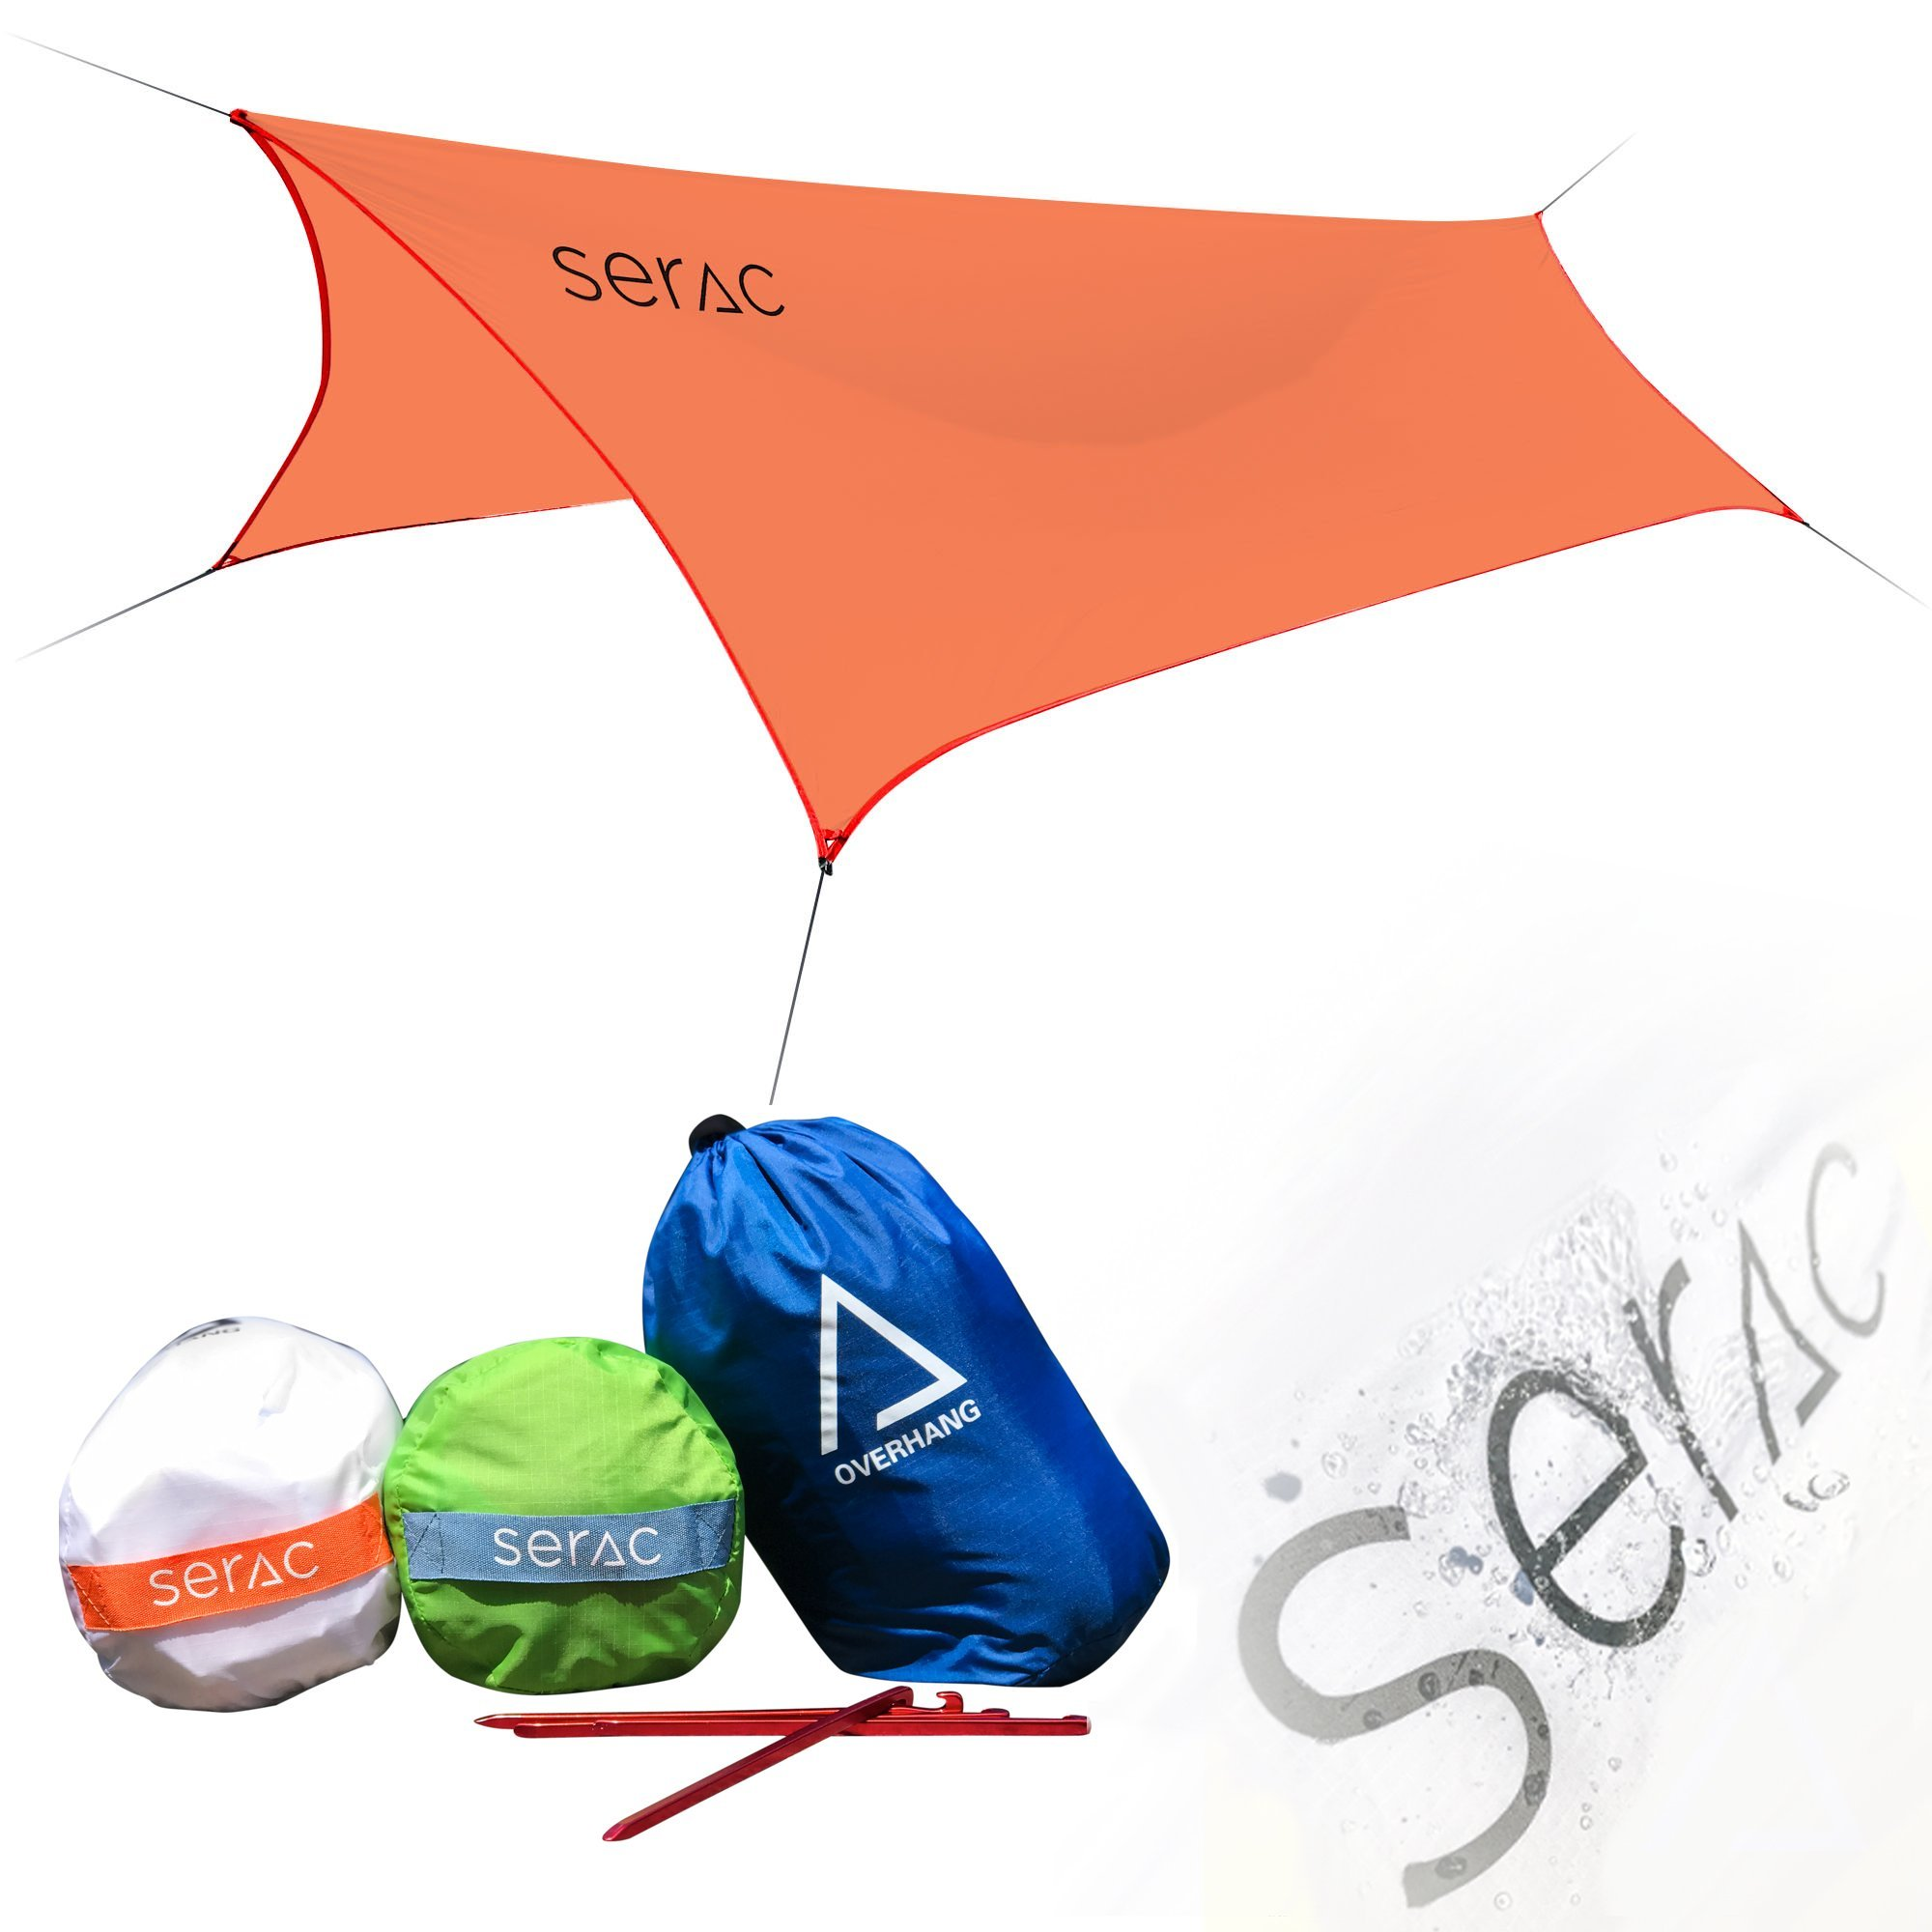 Serac [#1 Hammock and Tent Tarp] Ultralight Hammock Rain Fly and Shelter Perfect for Waterproof Camping, Lightweight Backpacking and Portable for Travel (Red/Orange) by Serac